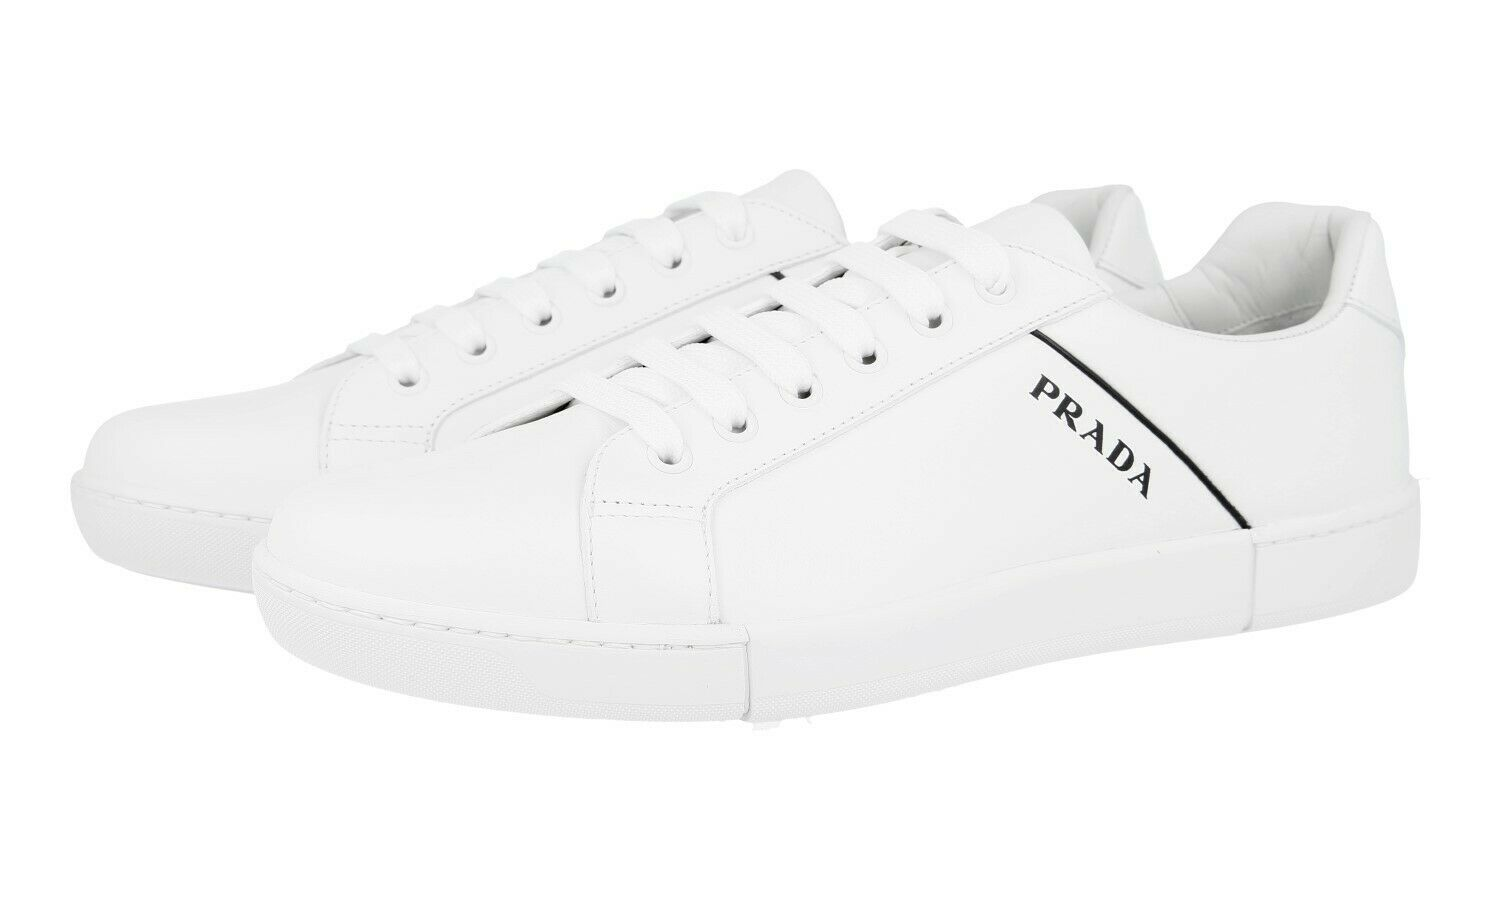 AUTH LUXURY PRADA SNEAKERS SHOES 4E3340 WHITE NEW US 12.5 EU 45,5 46